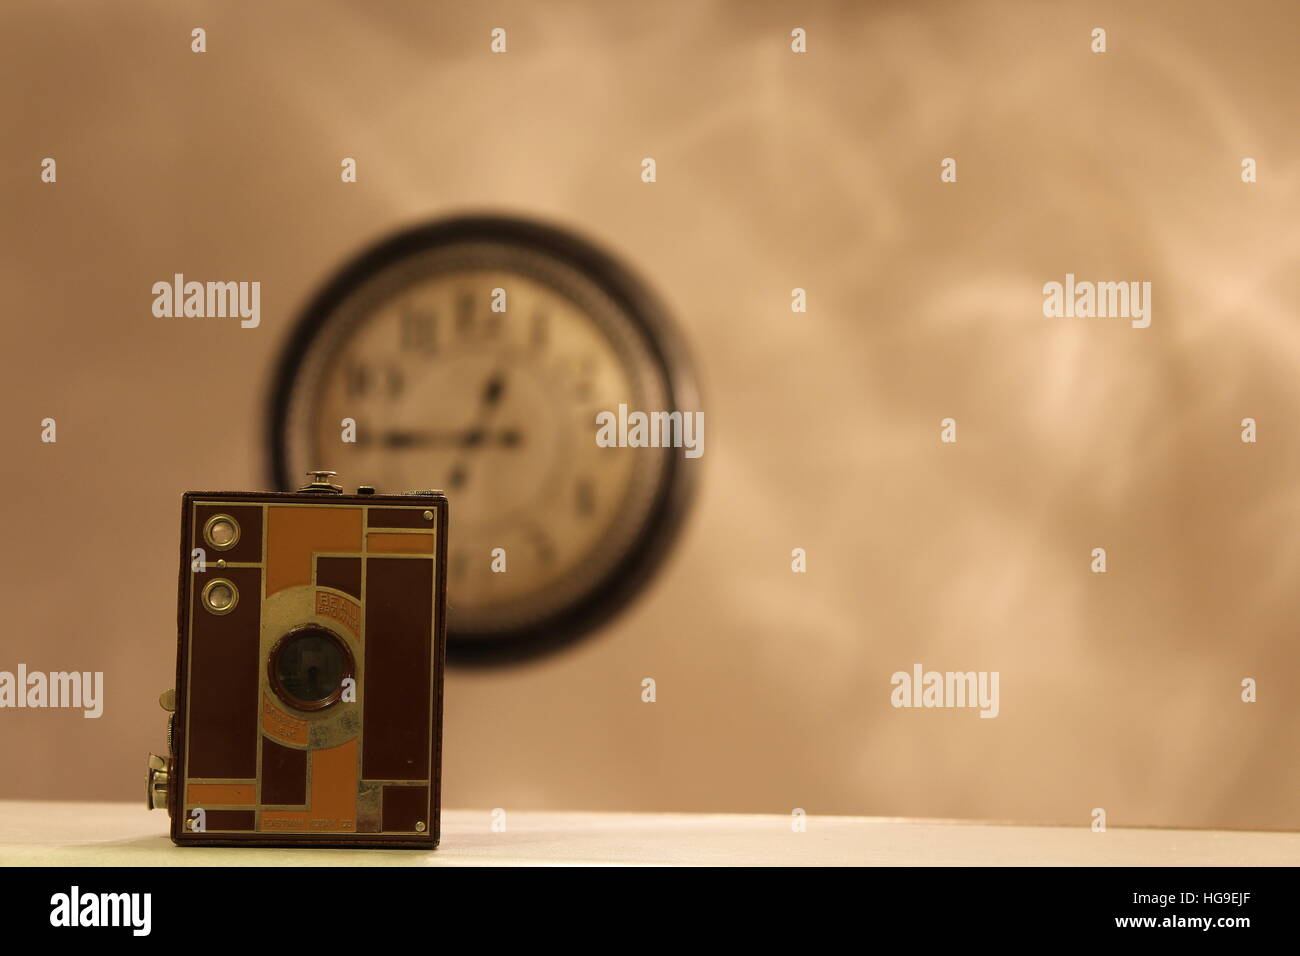 Old brownie camera with an oversize wall clock - Stock Image